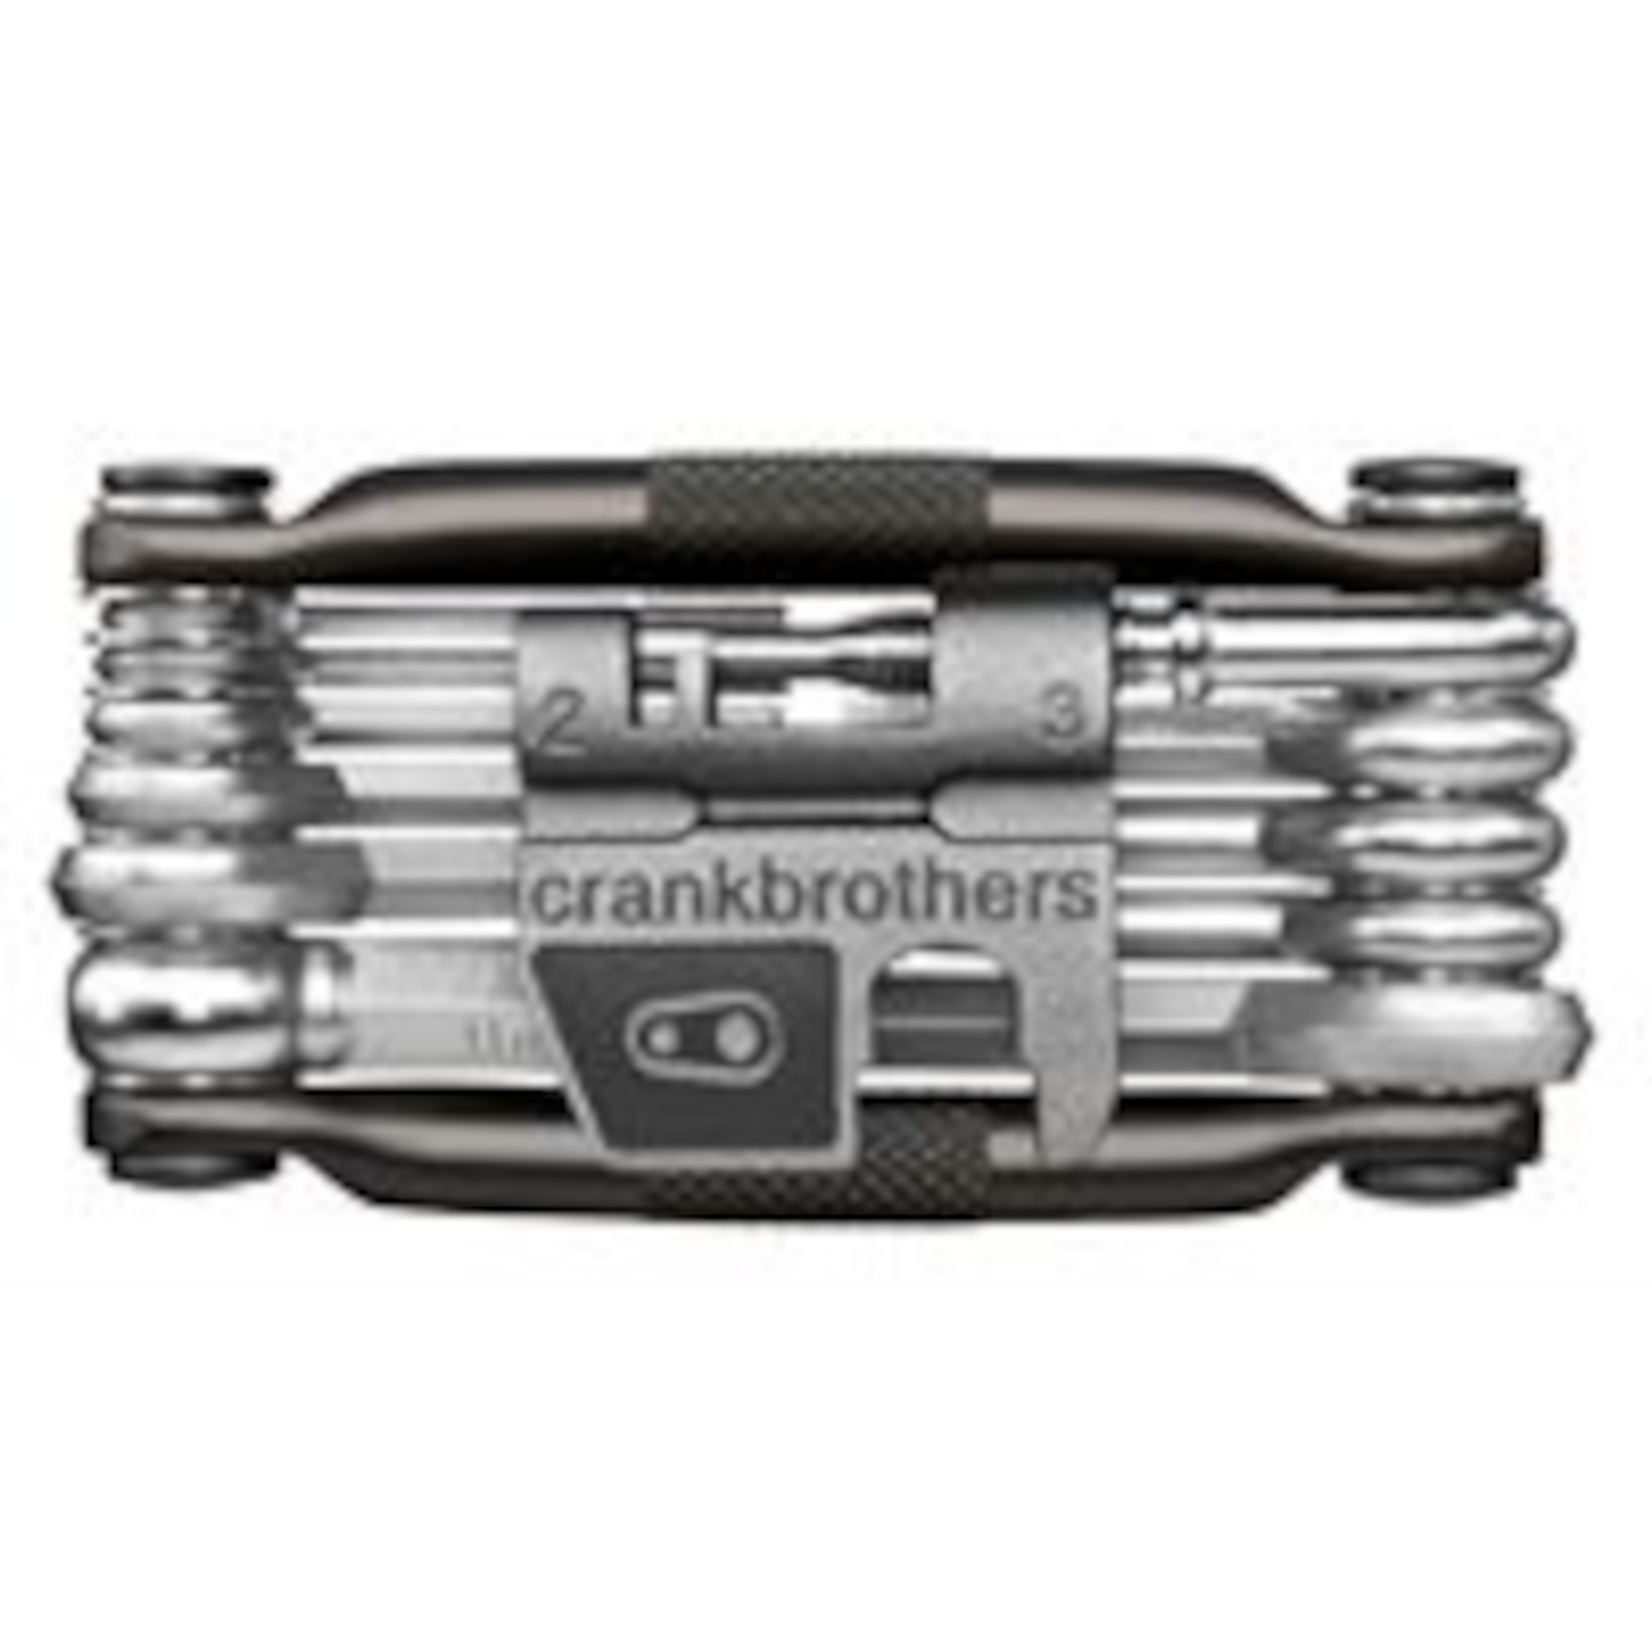 CRANK BROTHERS Crankbrothers M17 outil multifonction